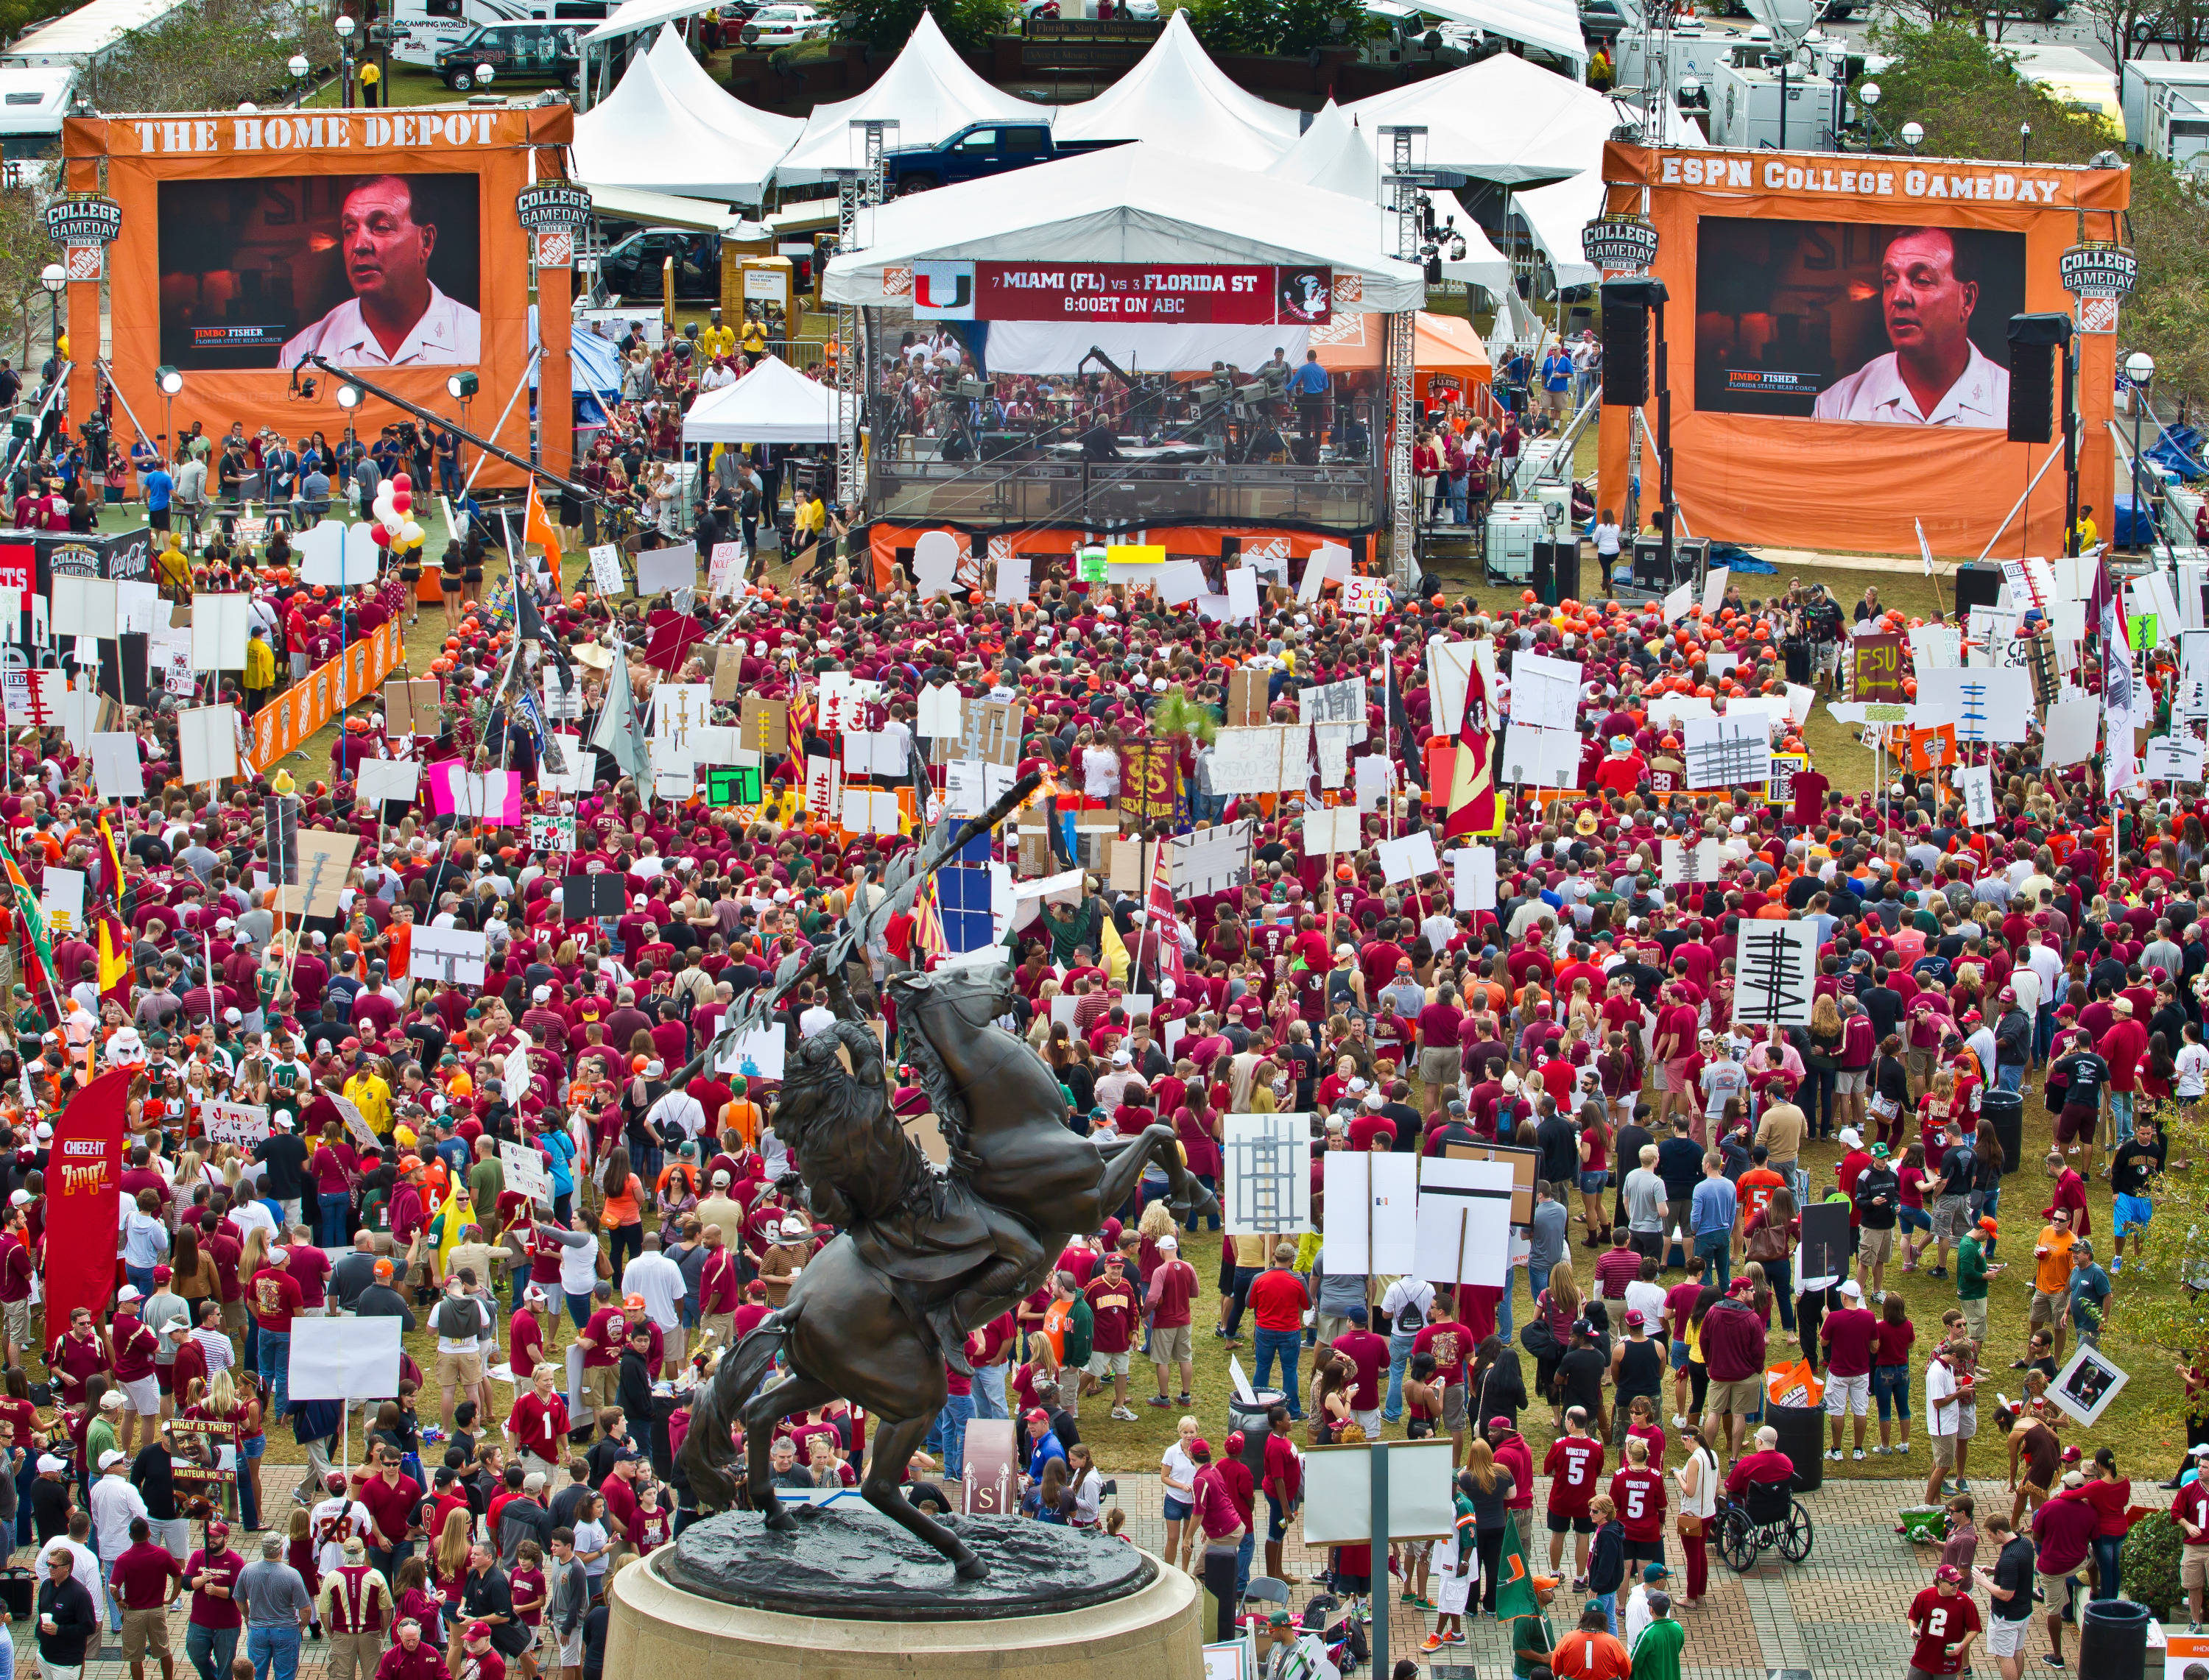 College Game Day crowds